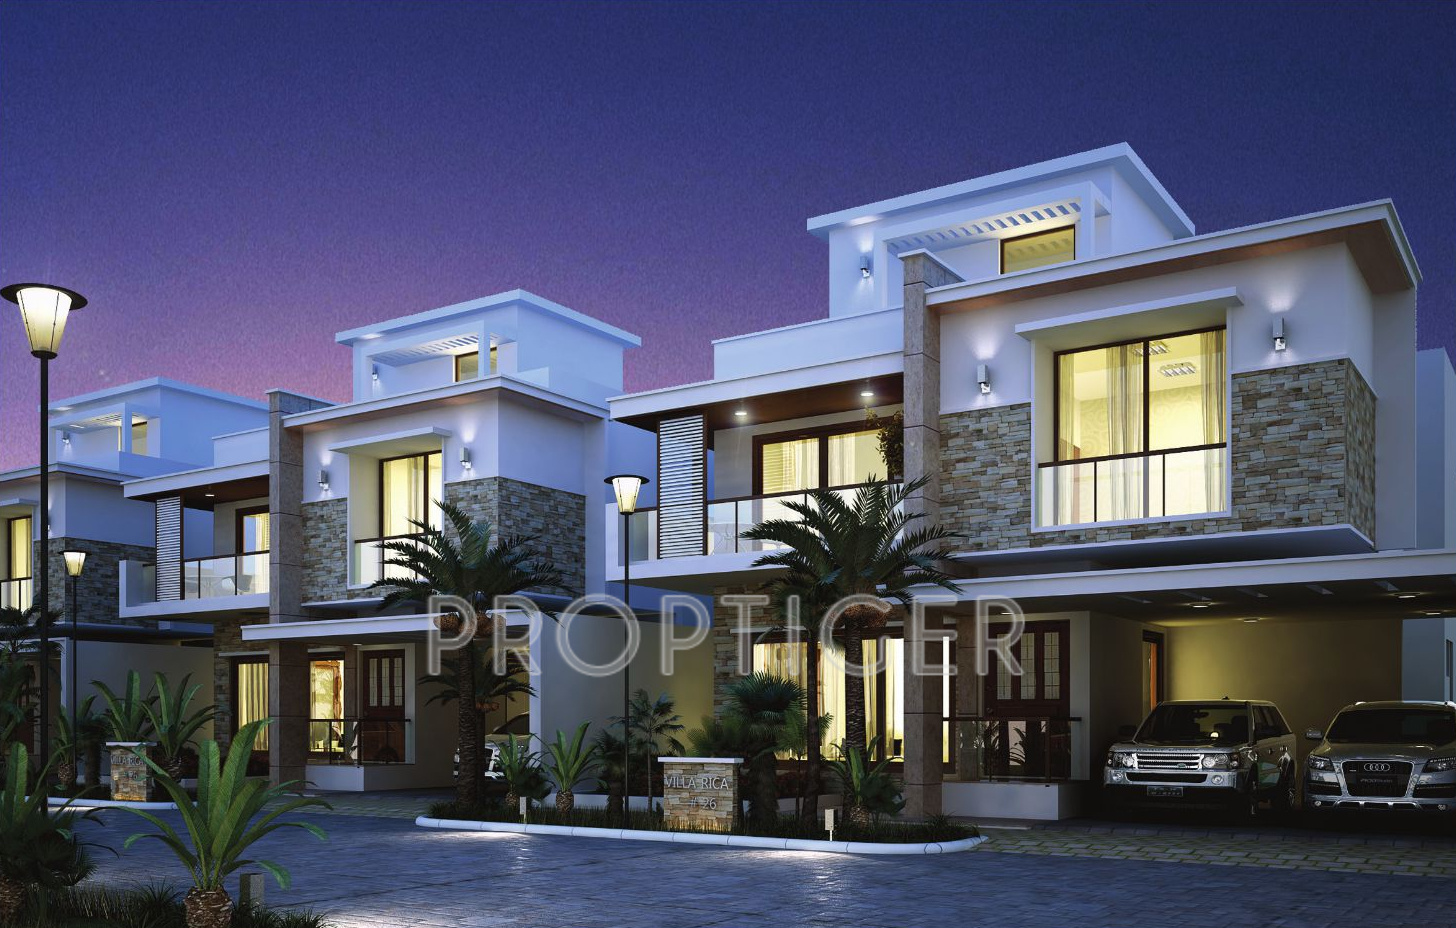 Ground Floor House Elevation In Bangalore : Main elevation image of veracious builders villa rica